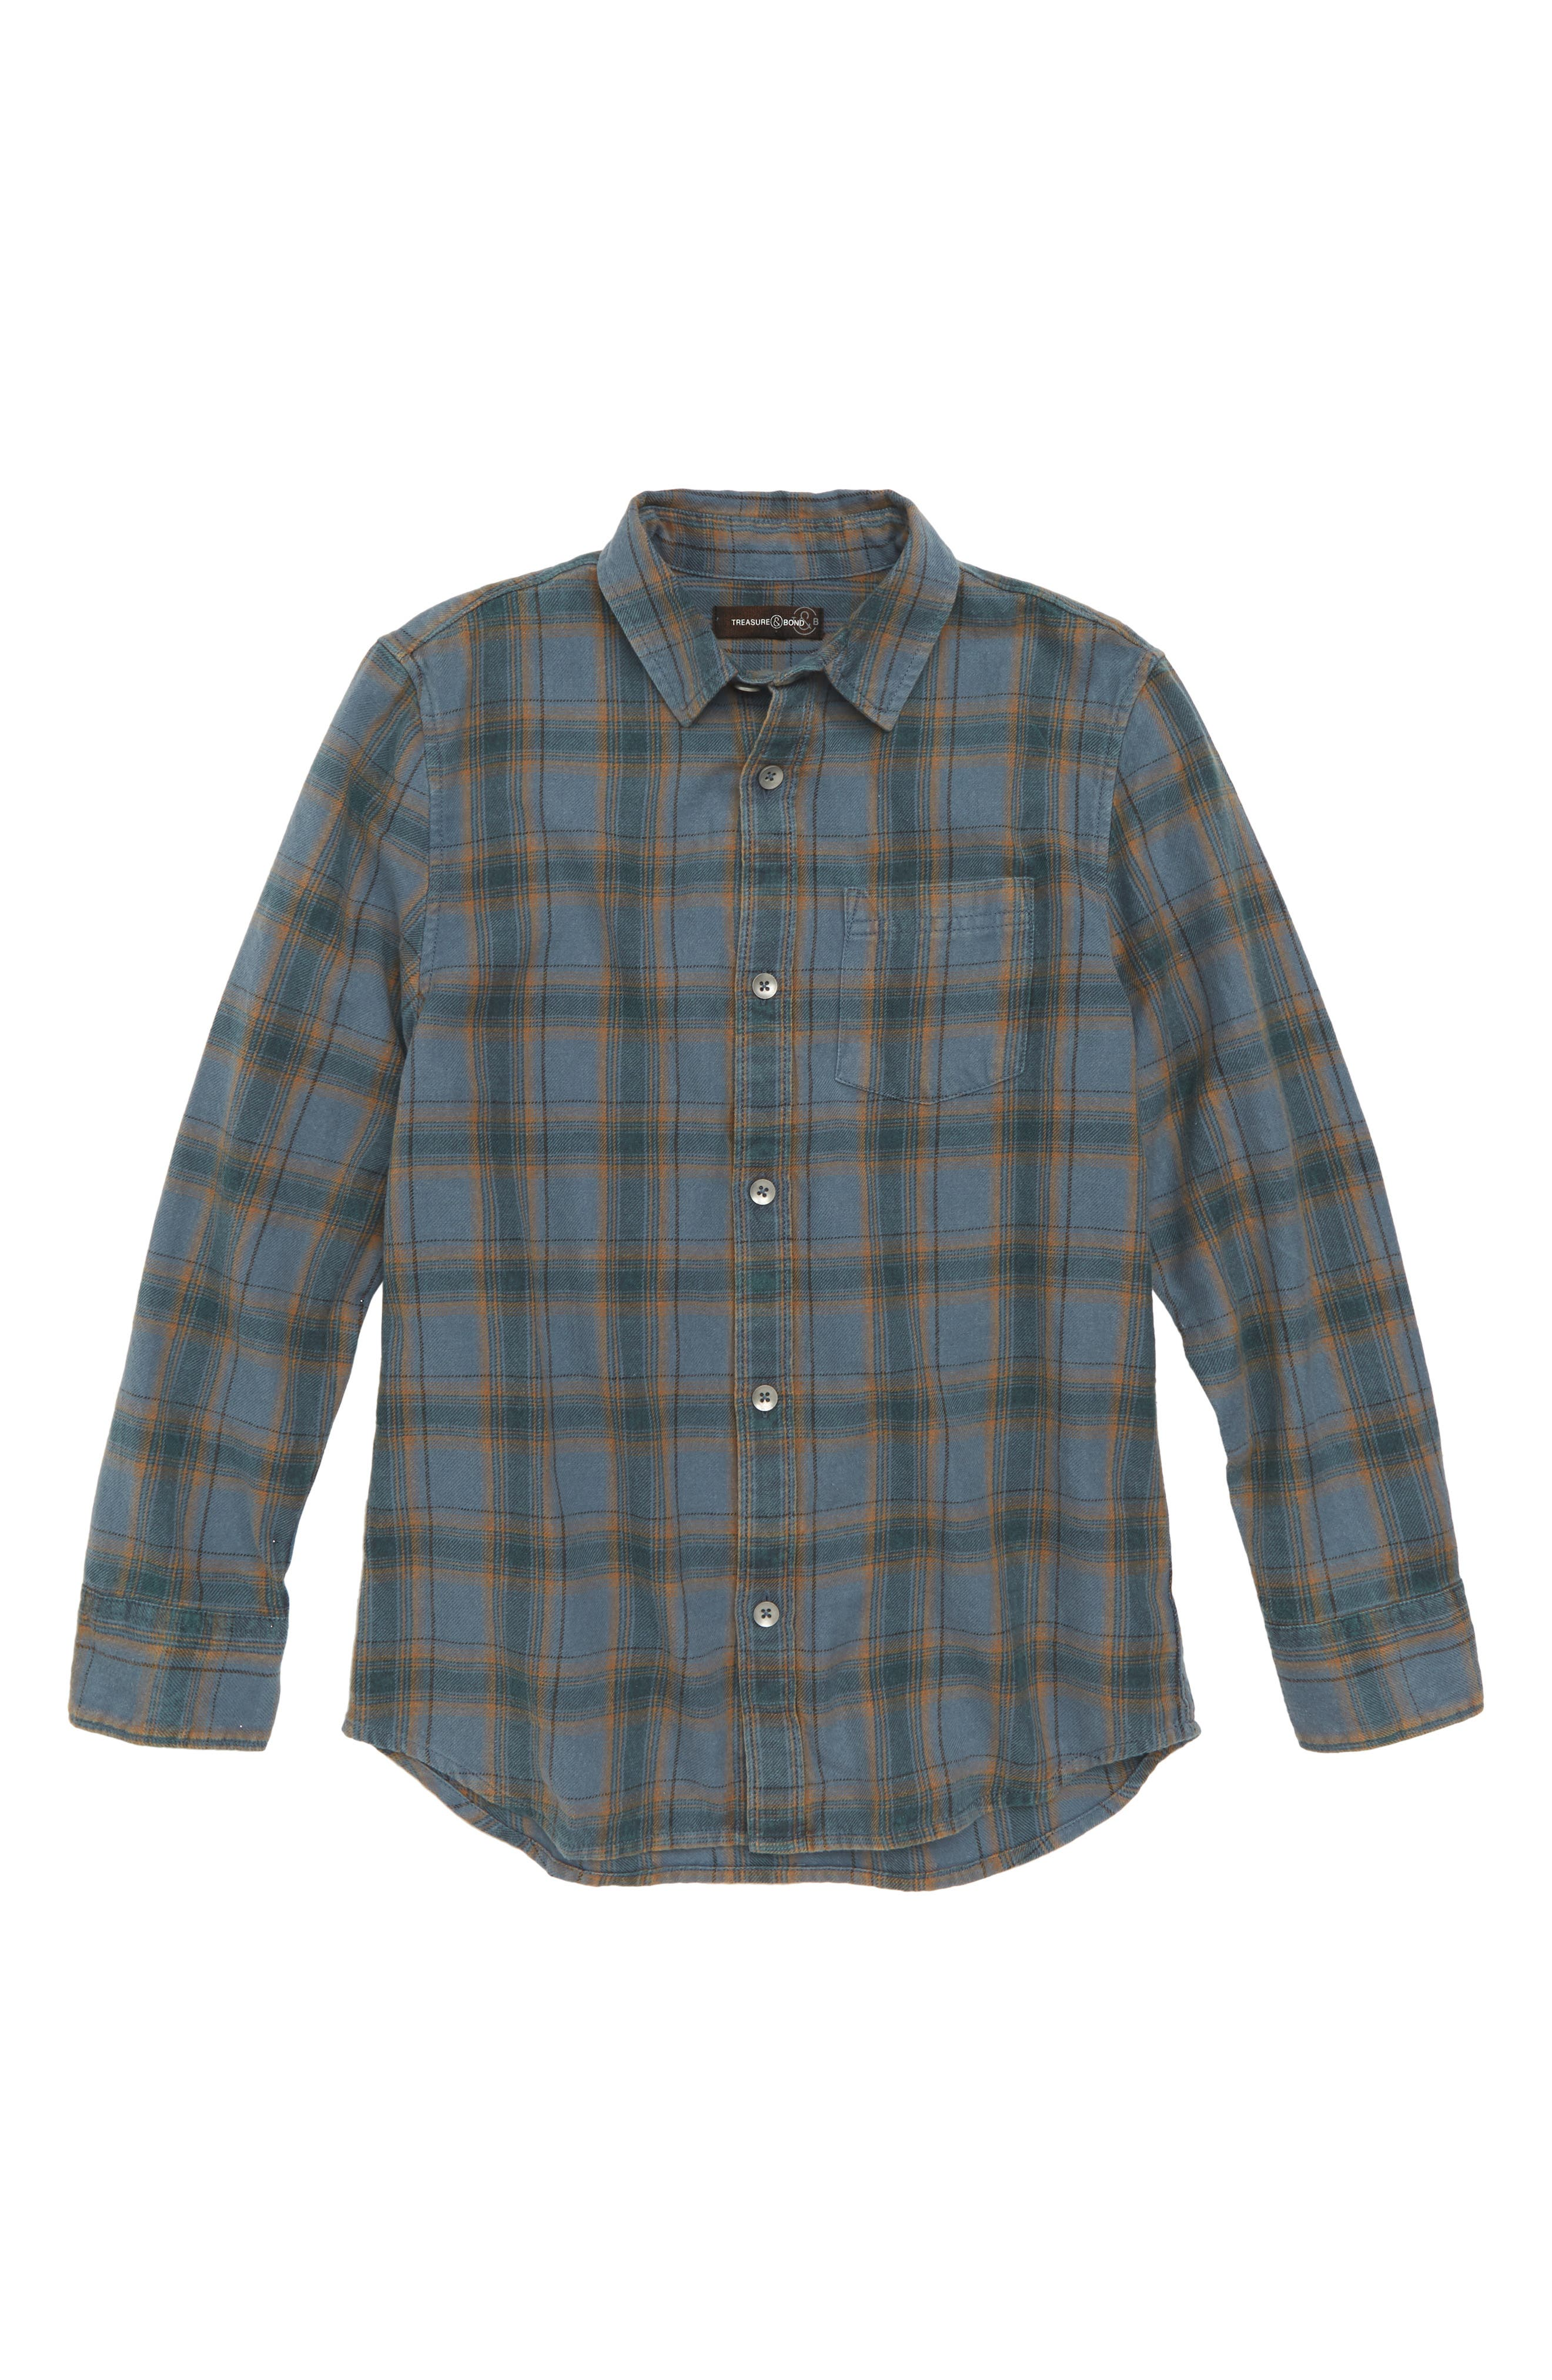 Washed Out Flannel Shirt,                         Main,                         color, BLUE CHINOISE/ BROWN PLAID